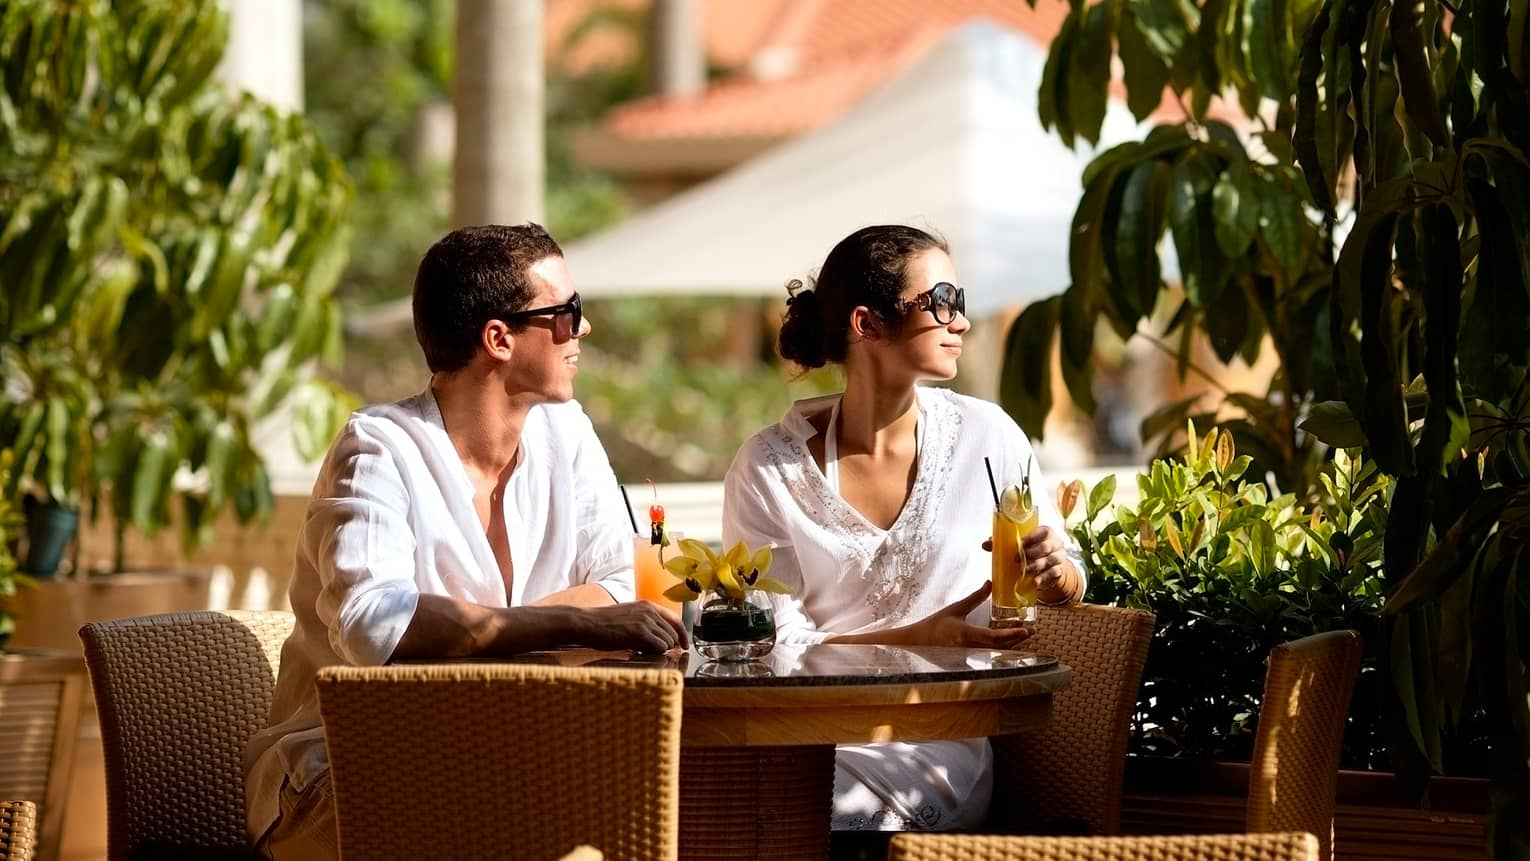 Couple wearing white linen shirts, sunglasses drinks cocktails at patio table